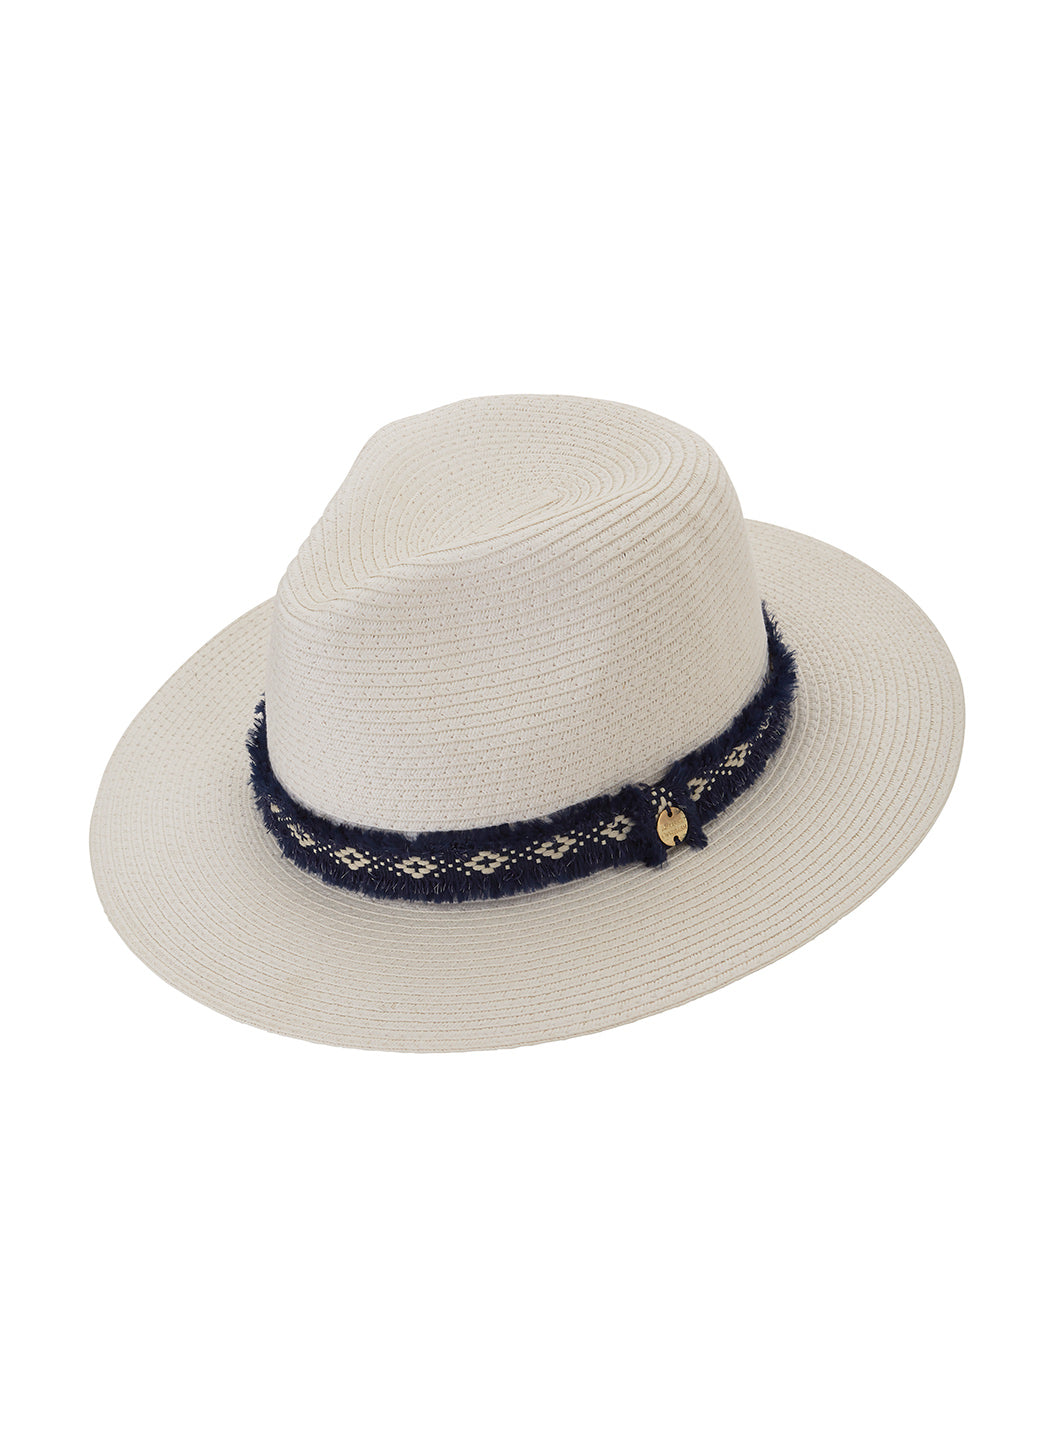 Fedora Hat White Navy